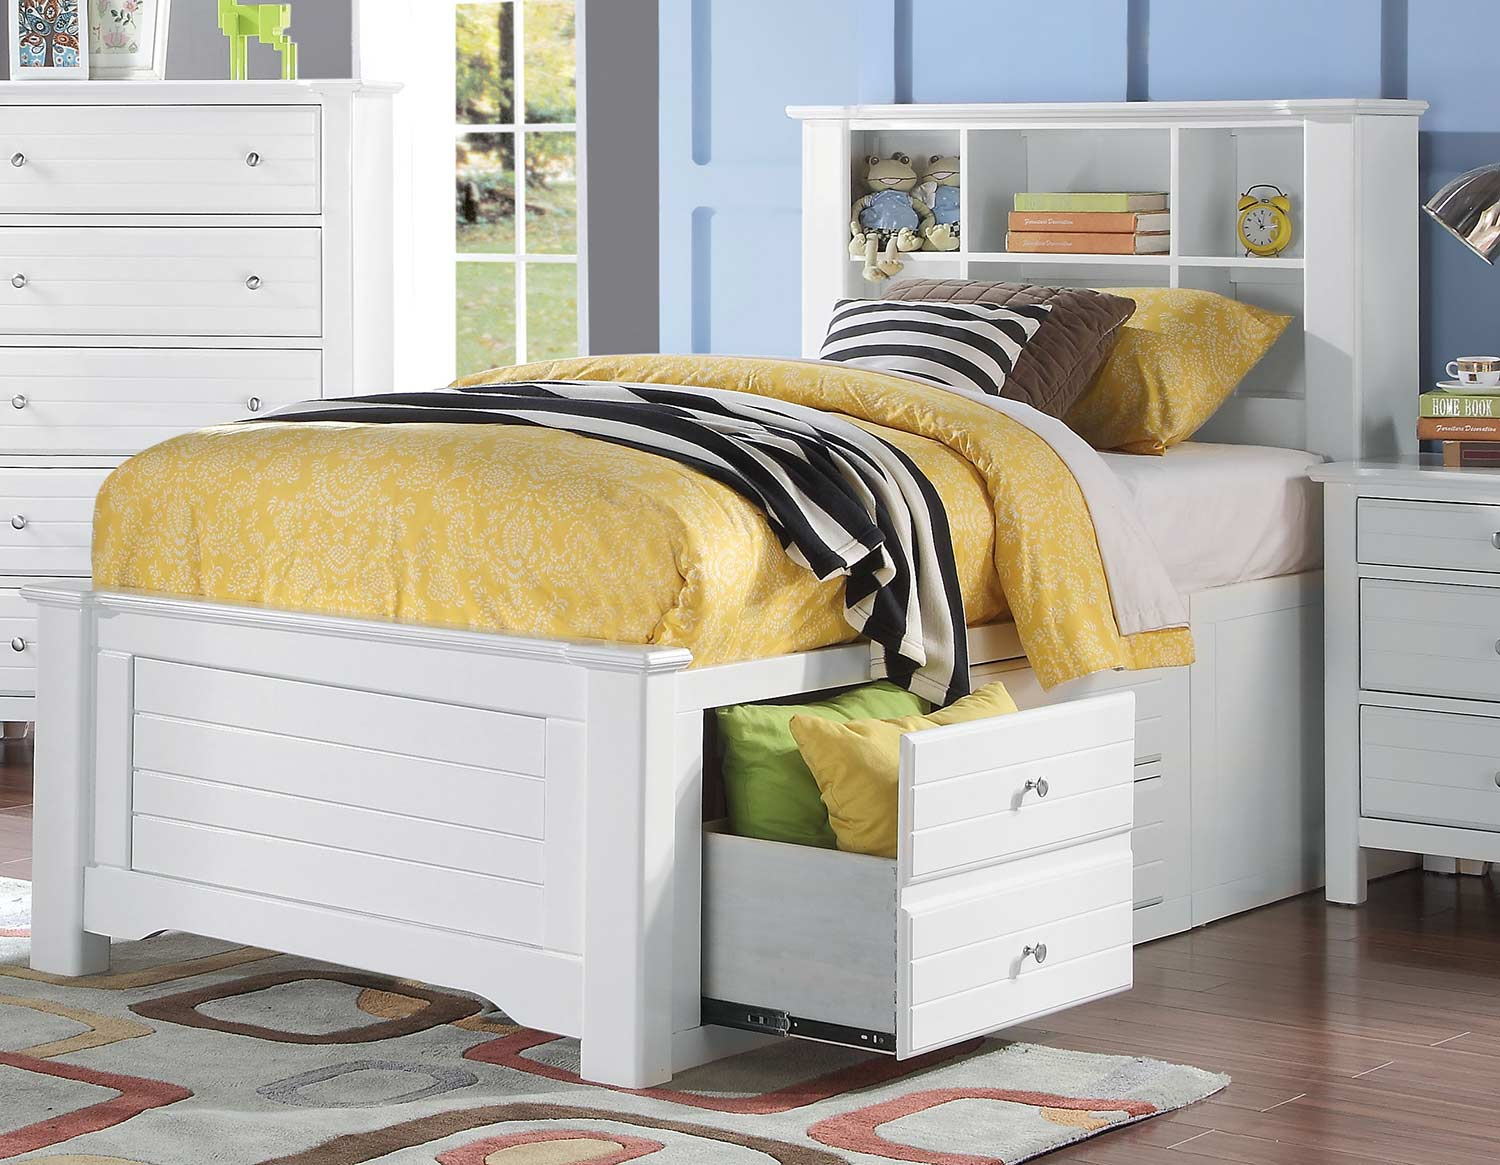 Acme Mallowsea Bed with Storage Rail - White